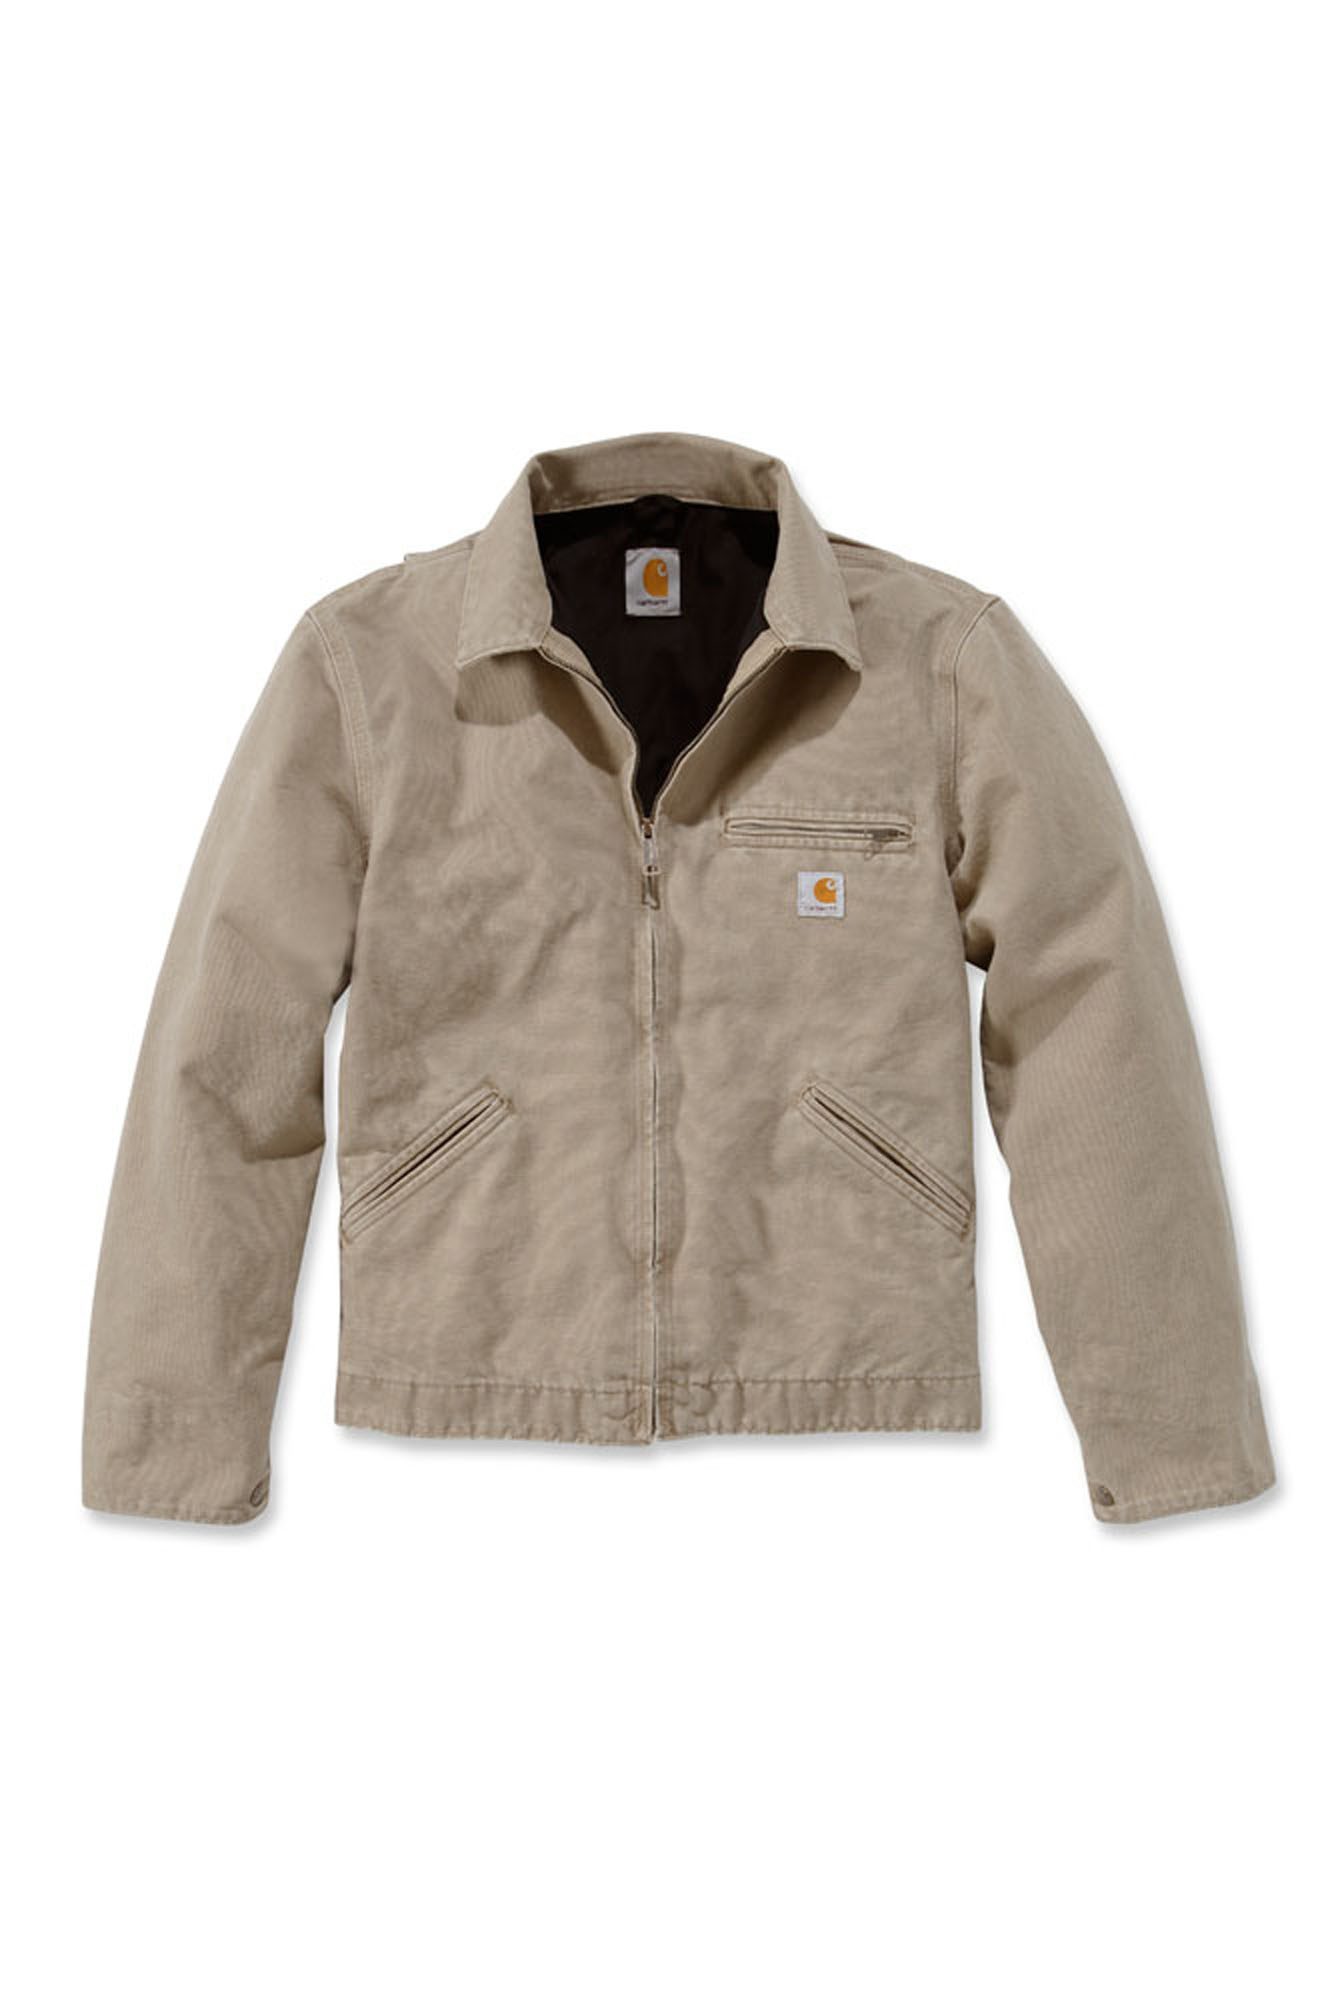 Carhartt EJ196 Lightweight Detroit Jacket Mens New ...